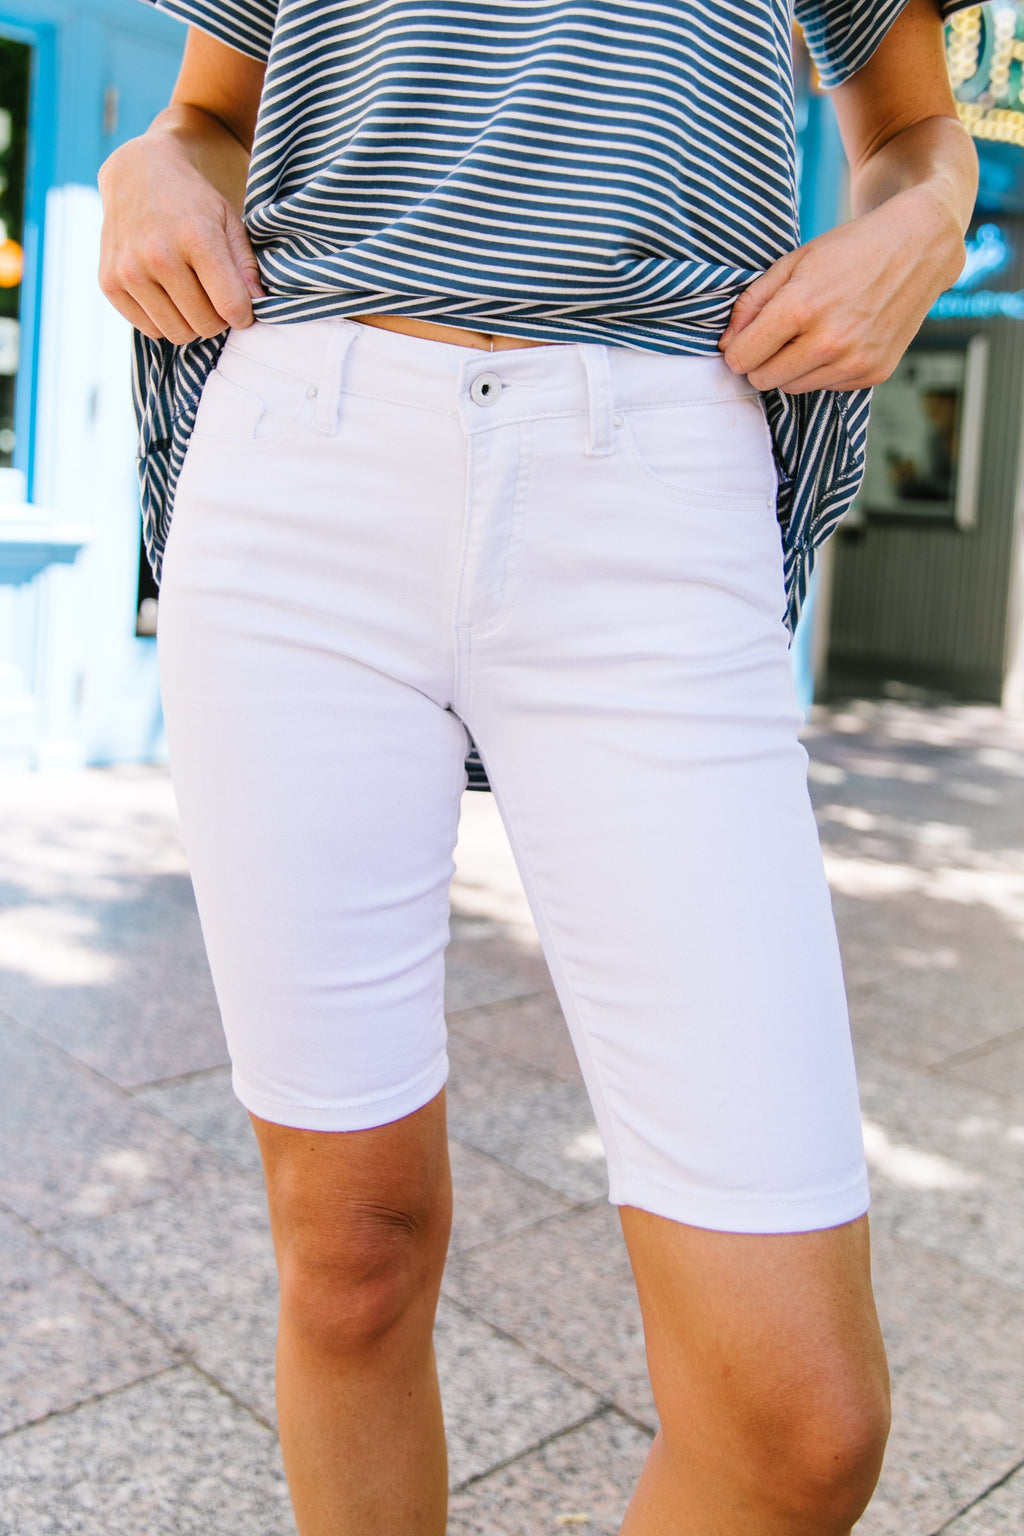 St. George White Bermuda Shorts-Bottoms, Shorts-Womens Artisan USA American Made Clothing Accessories